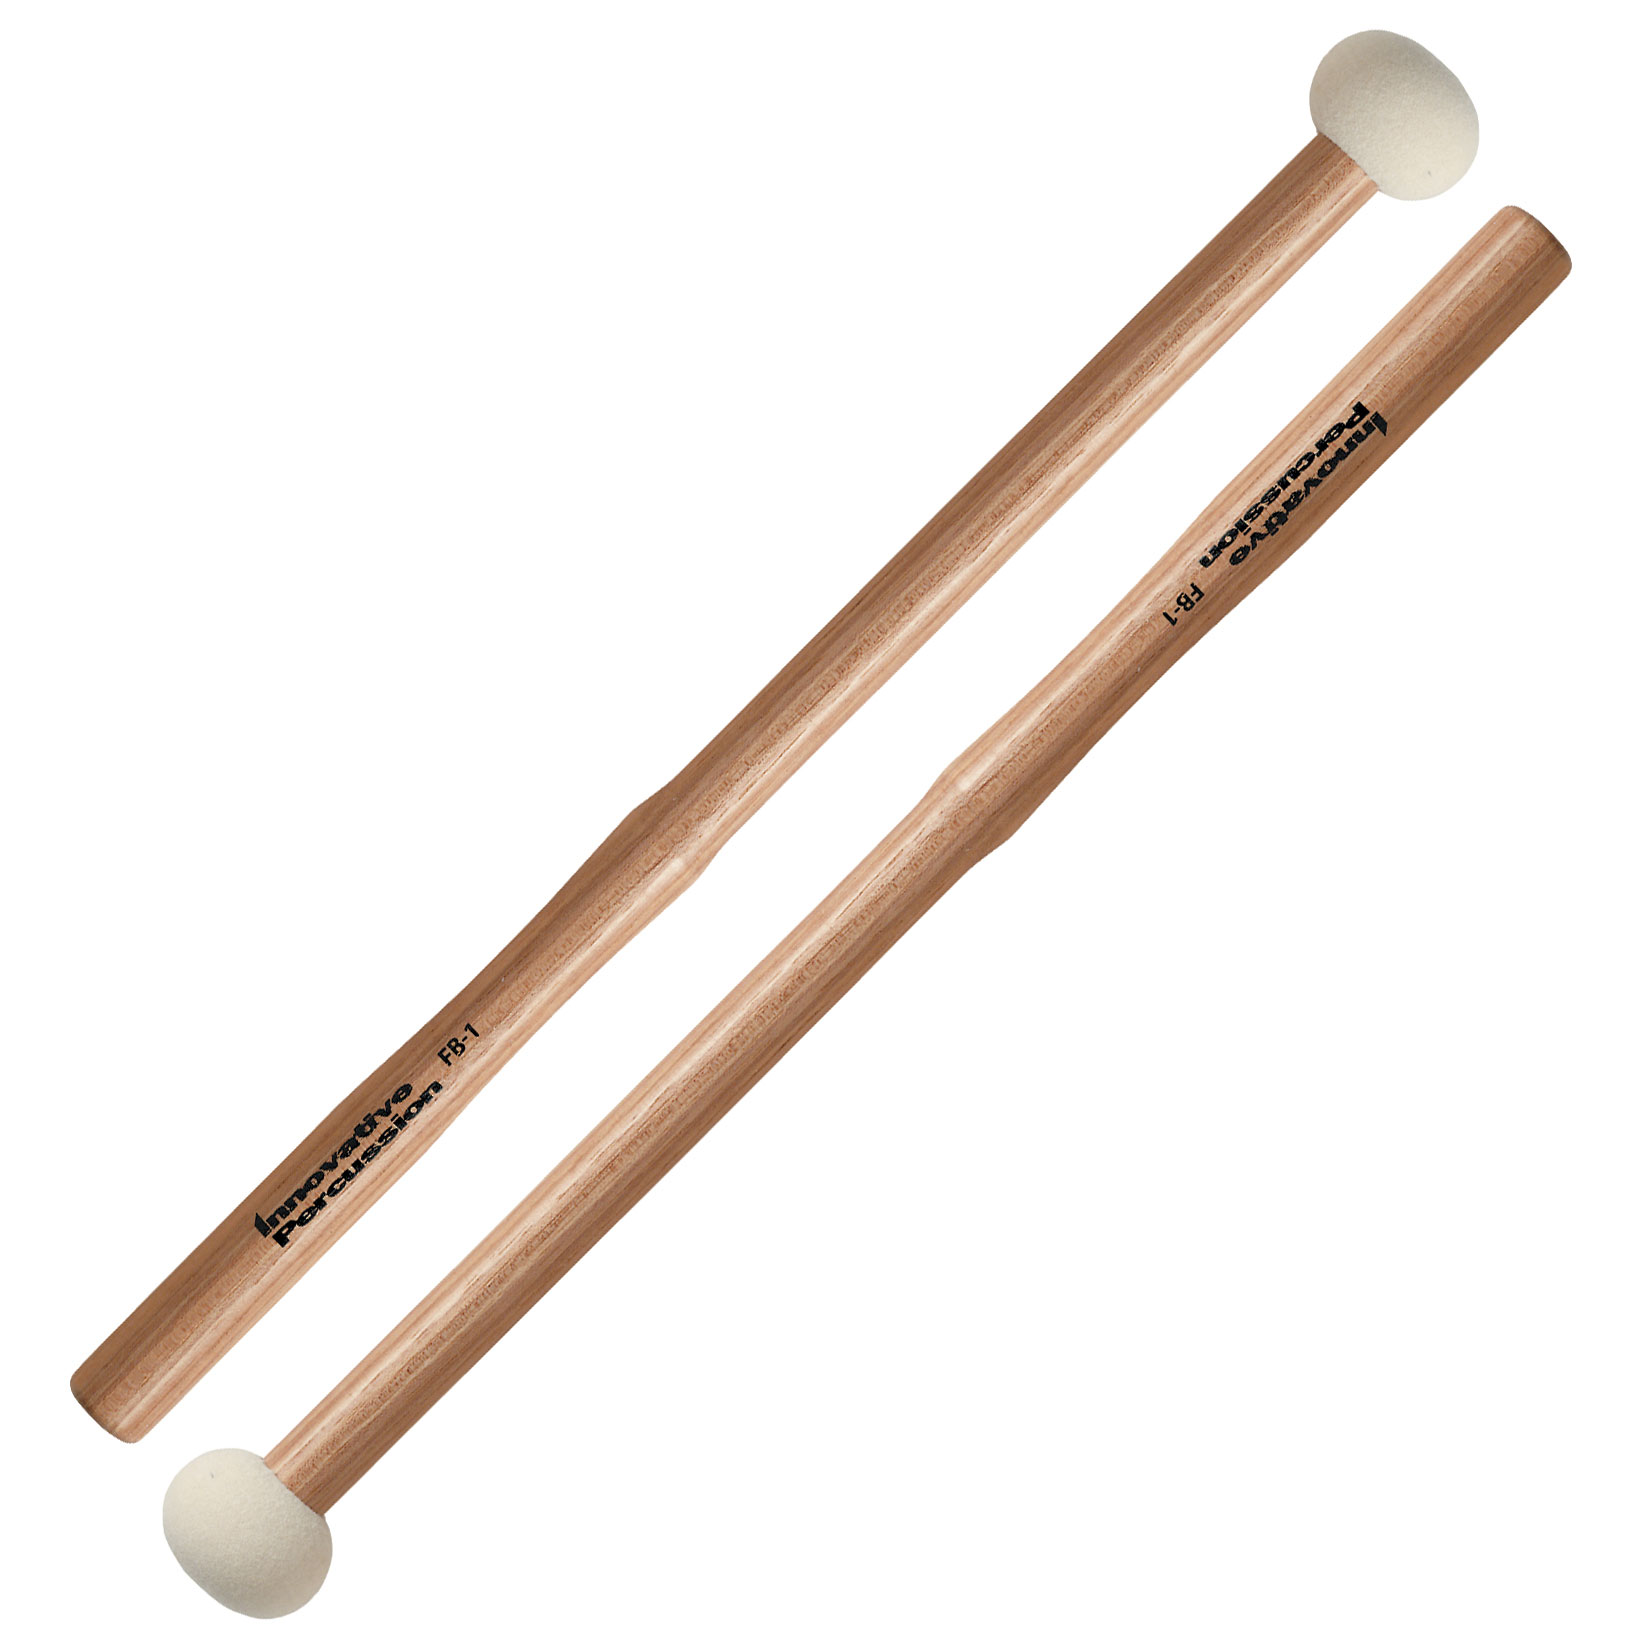 Innovative Percussion FB1 Hard Marching Bass Drum Mallets w/ Heartwood Hickory Shafts